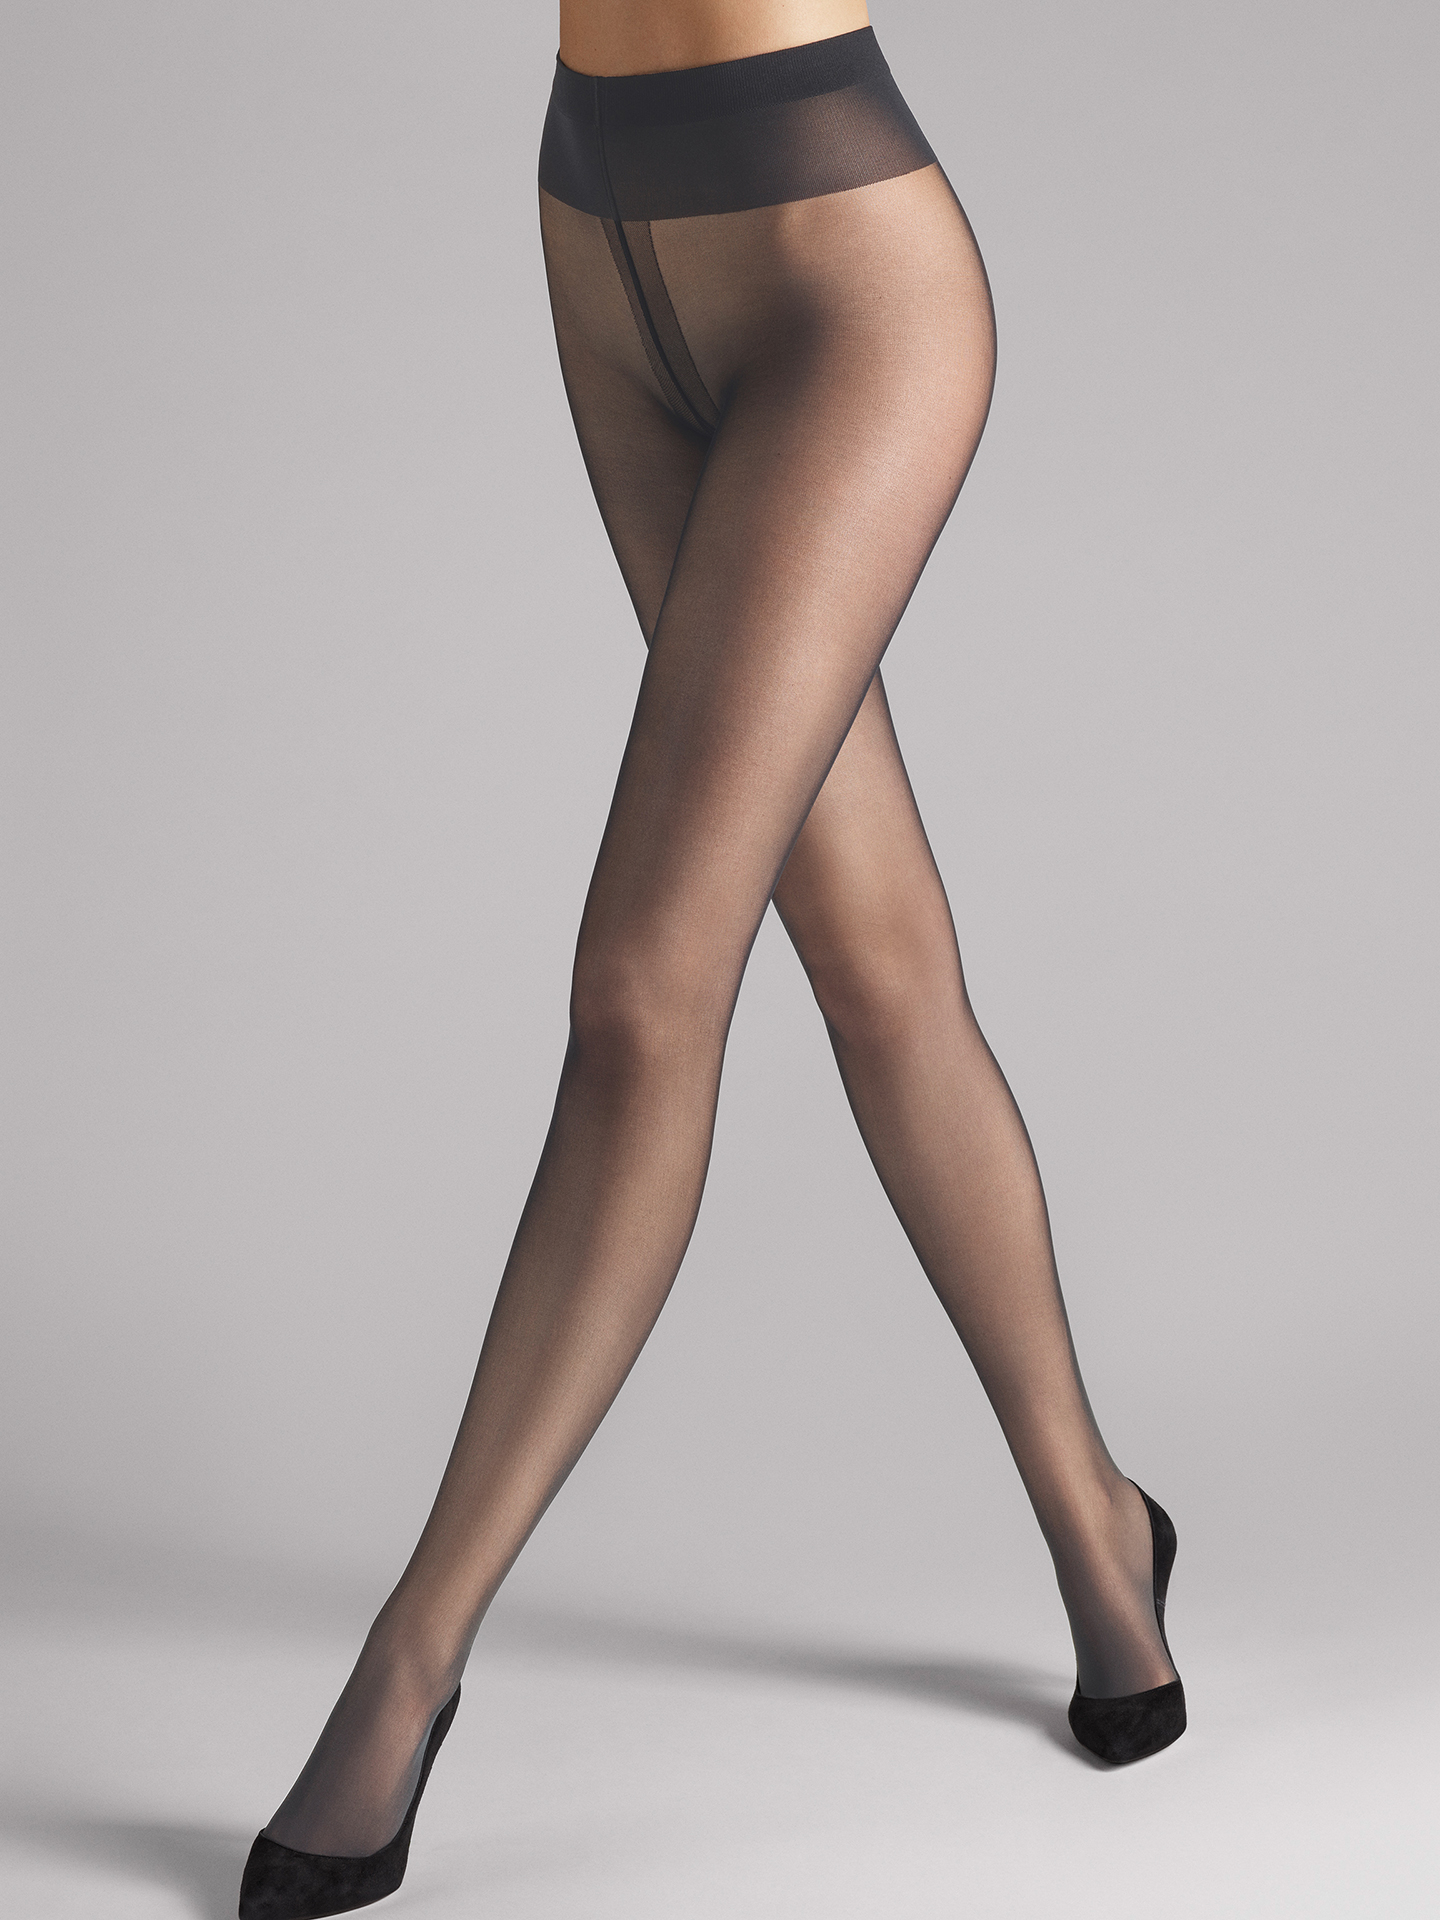 Wolford Apparel & Accessories > Clothing > Collant Individual 20 - 7221 - XS